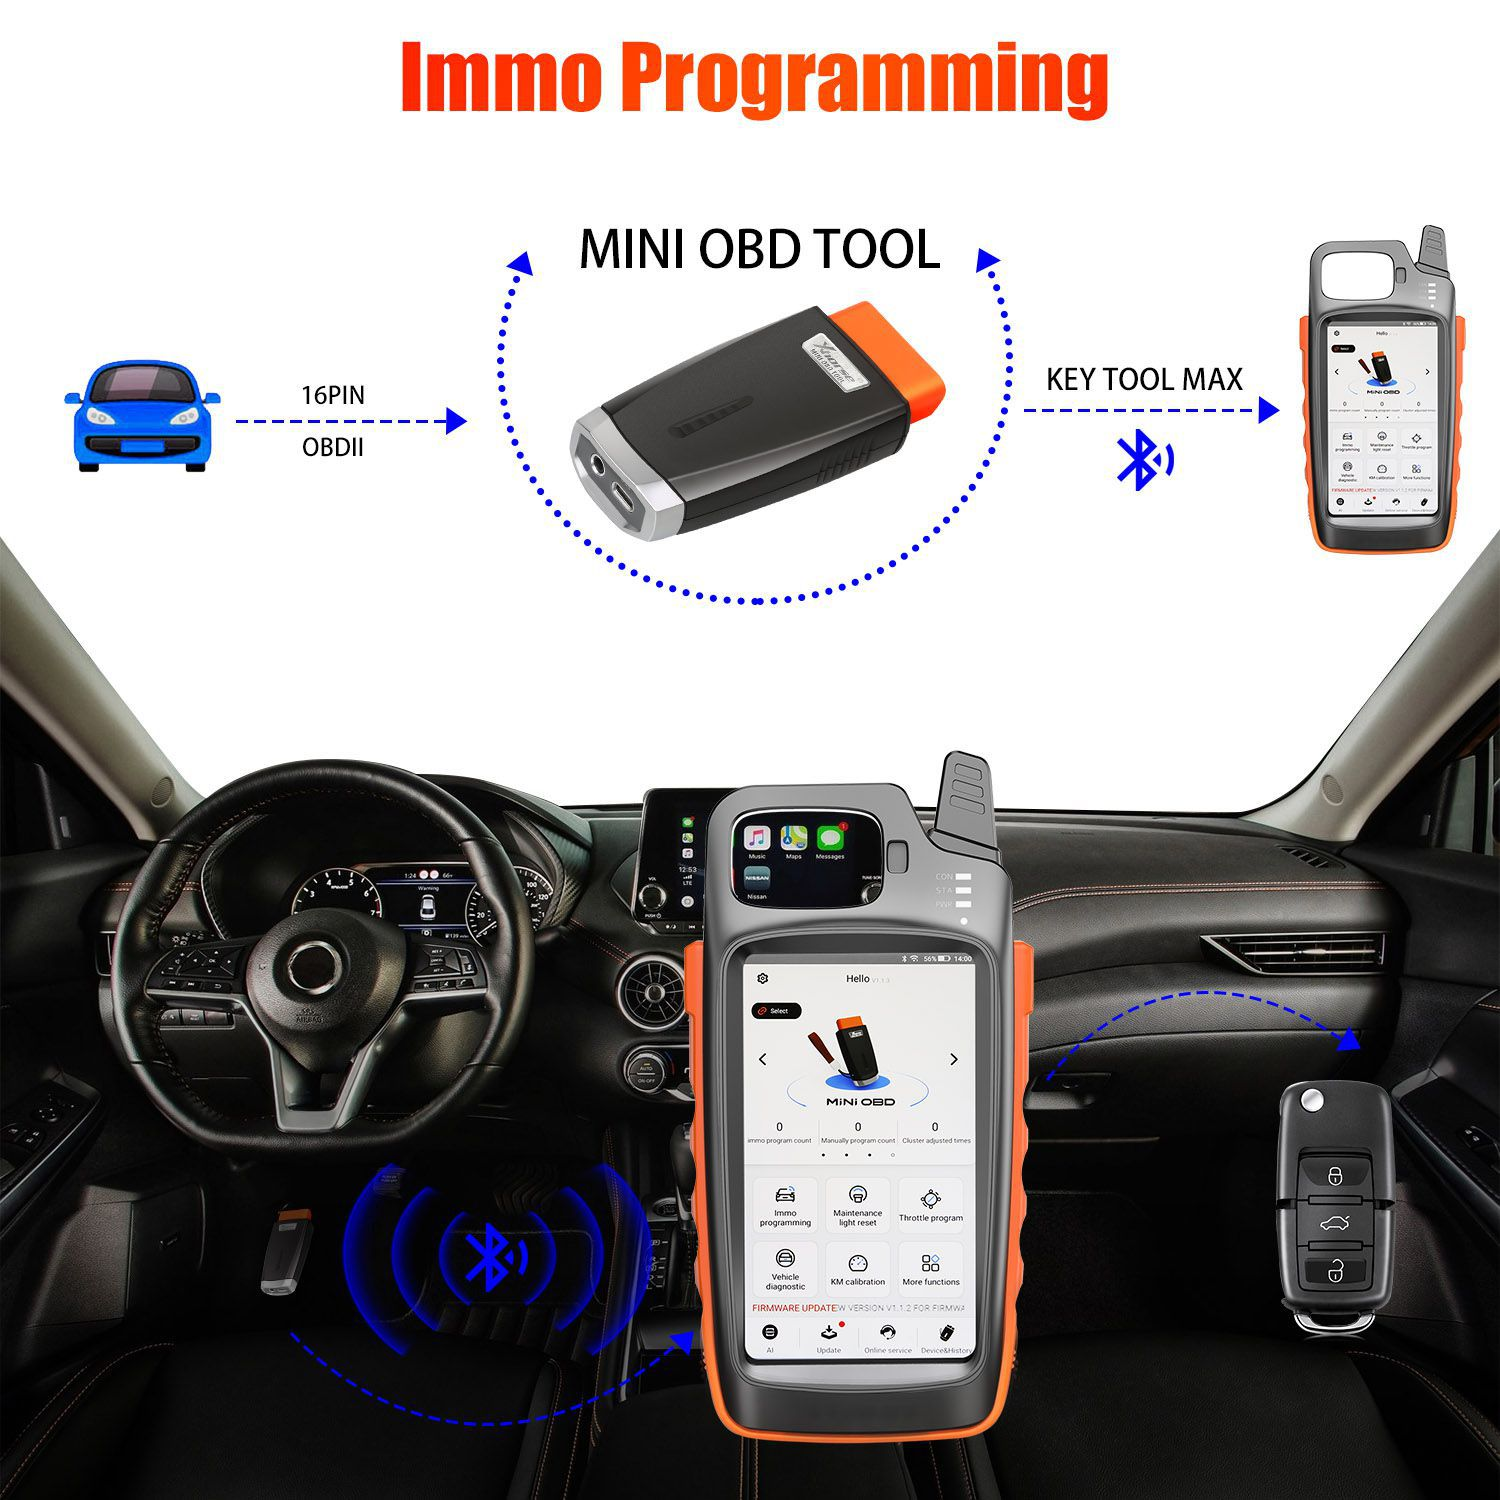 VVDI Mini OBD Tool Work For Xhorse VVDI Key Tool Max